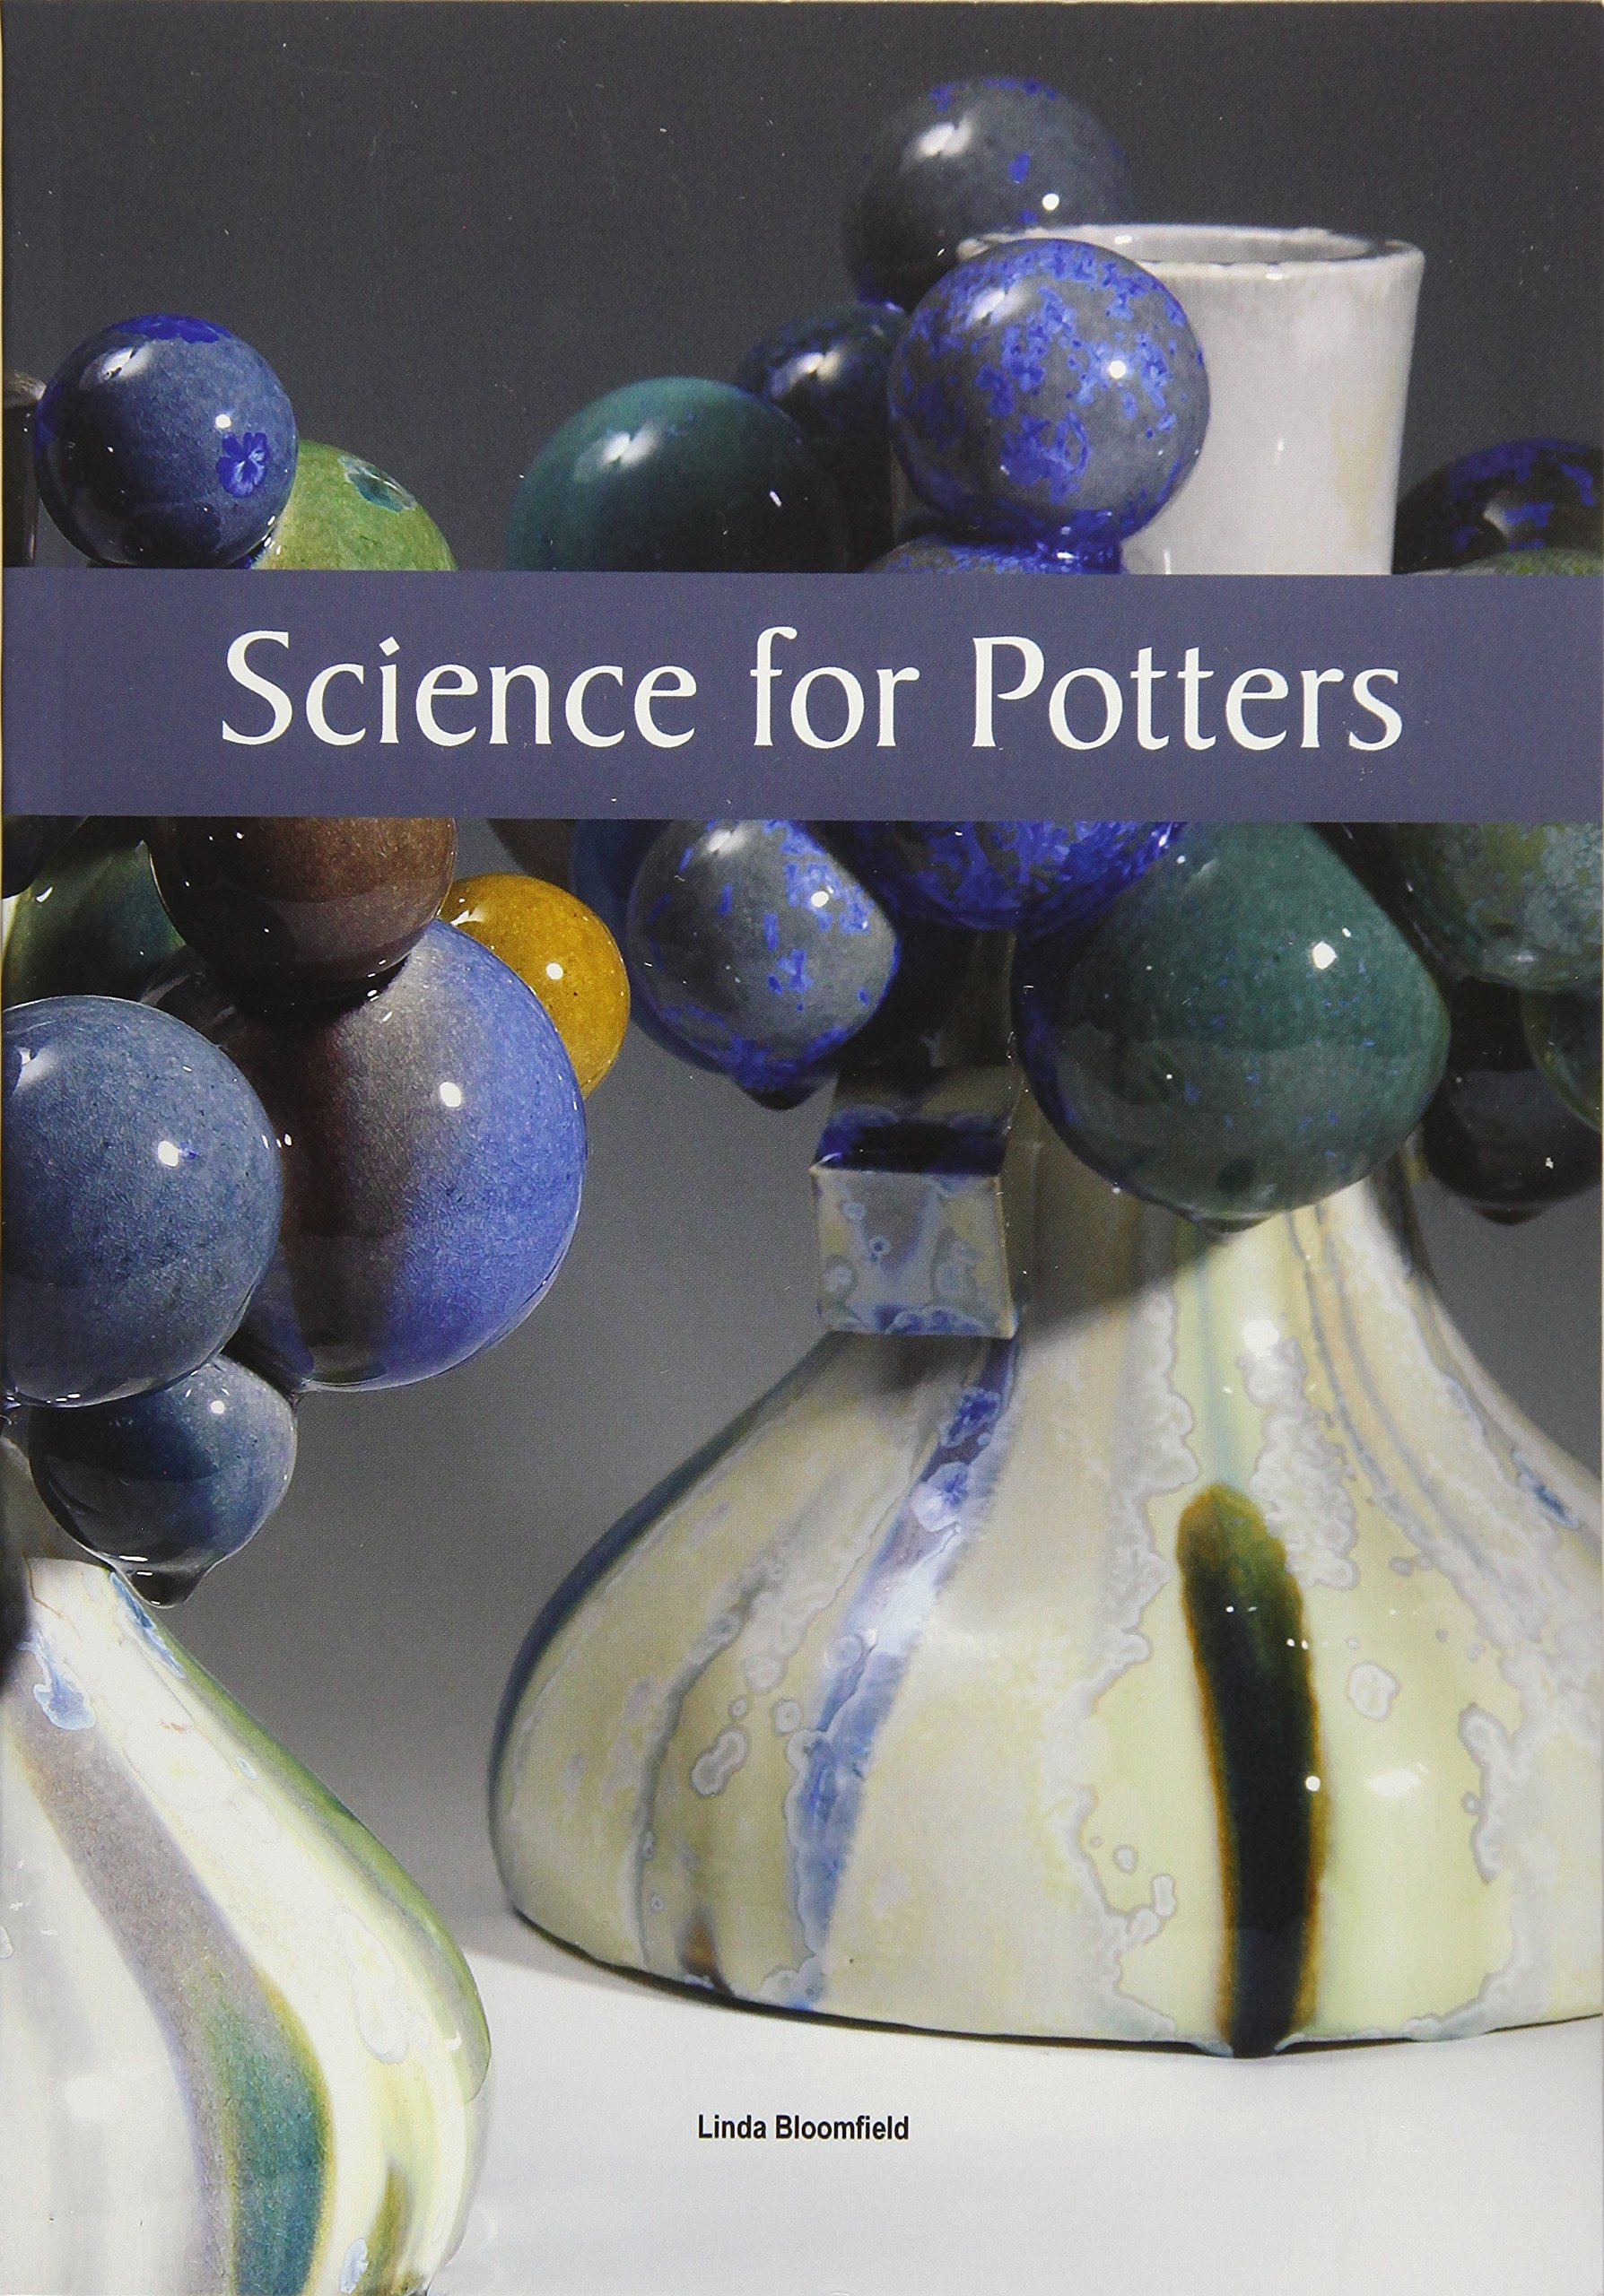 Science for Potters